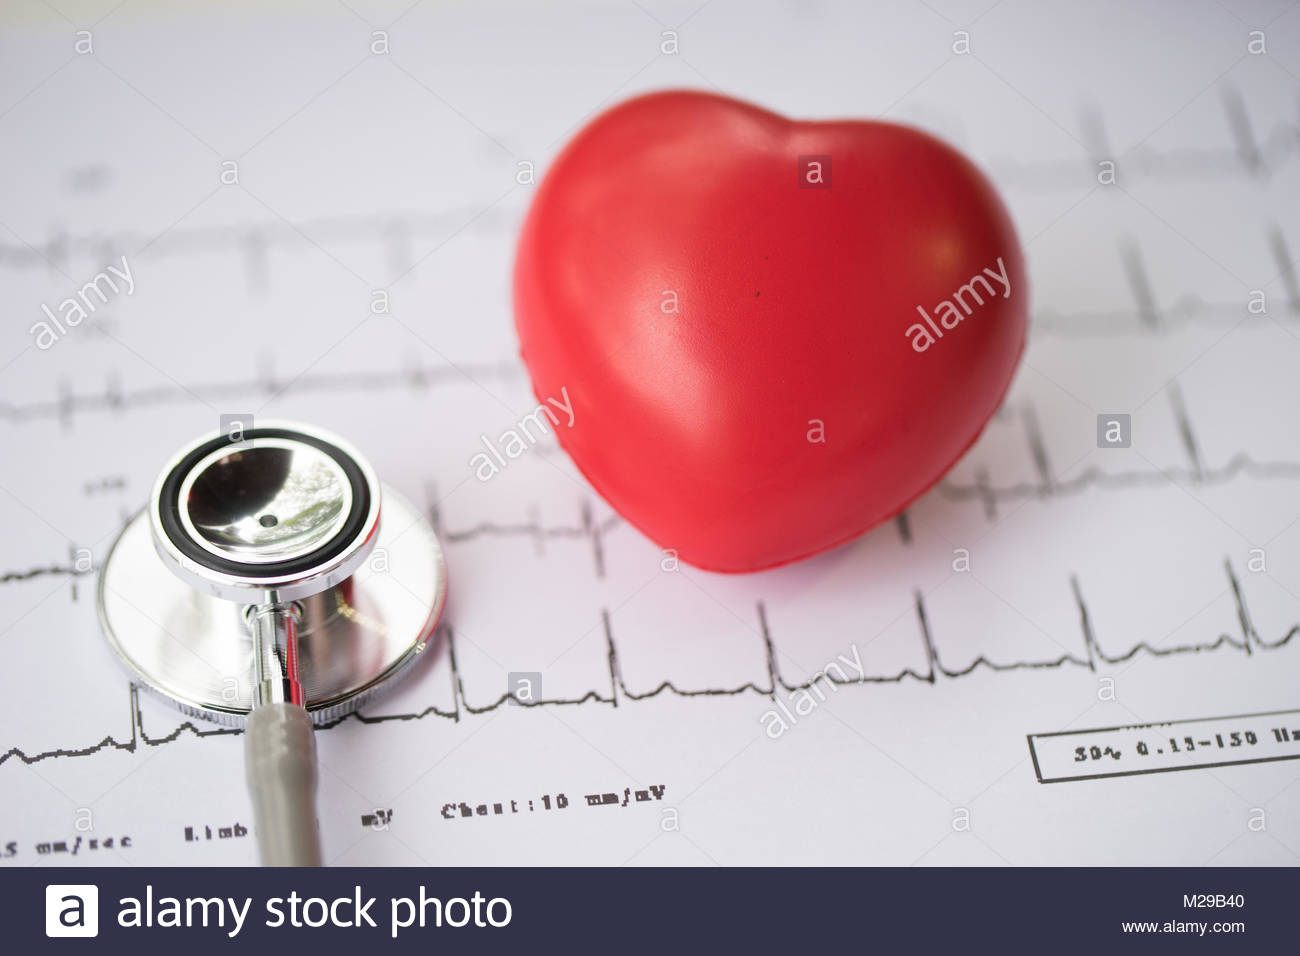 heart disease,Stethoscope and heart,diagnose heart disease,Stethoscope and heart,diagnose - Stock Image